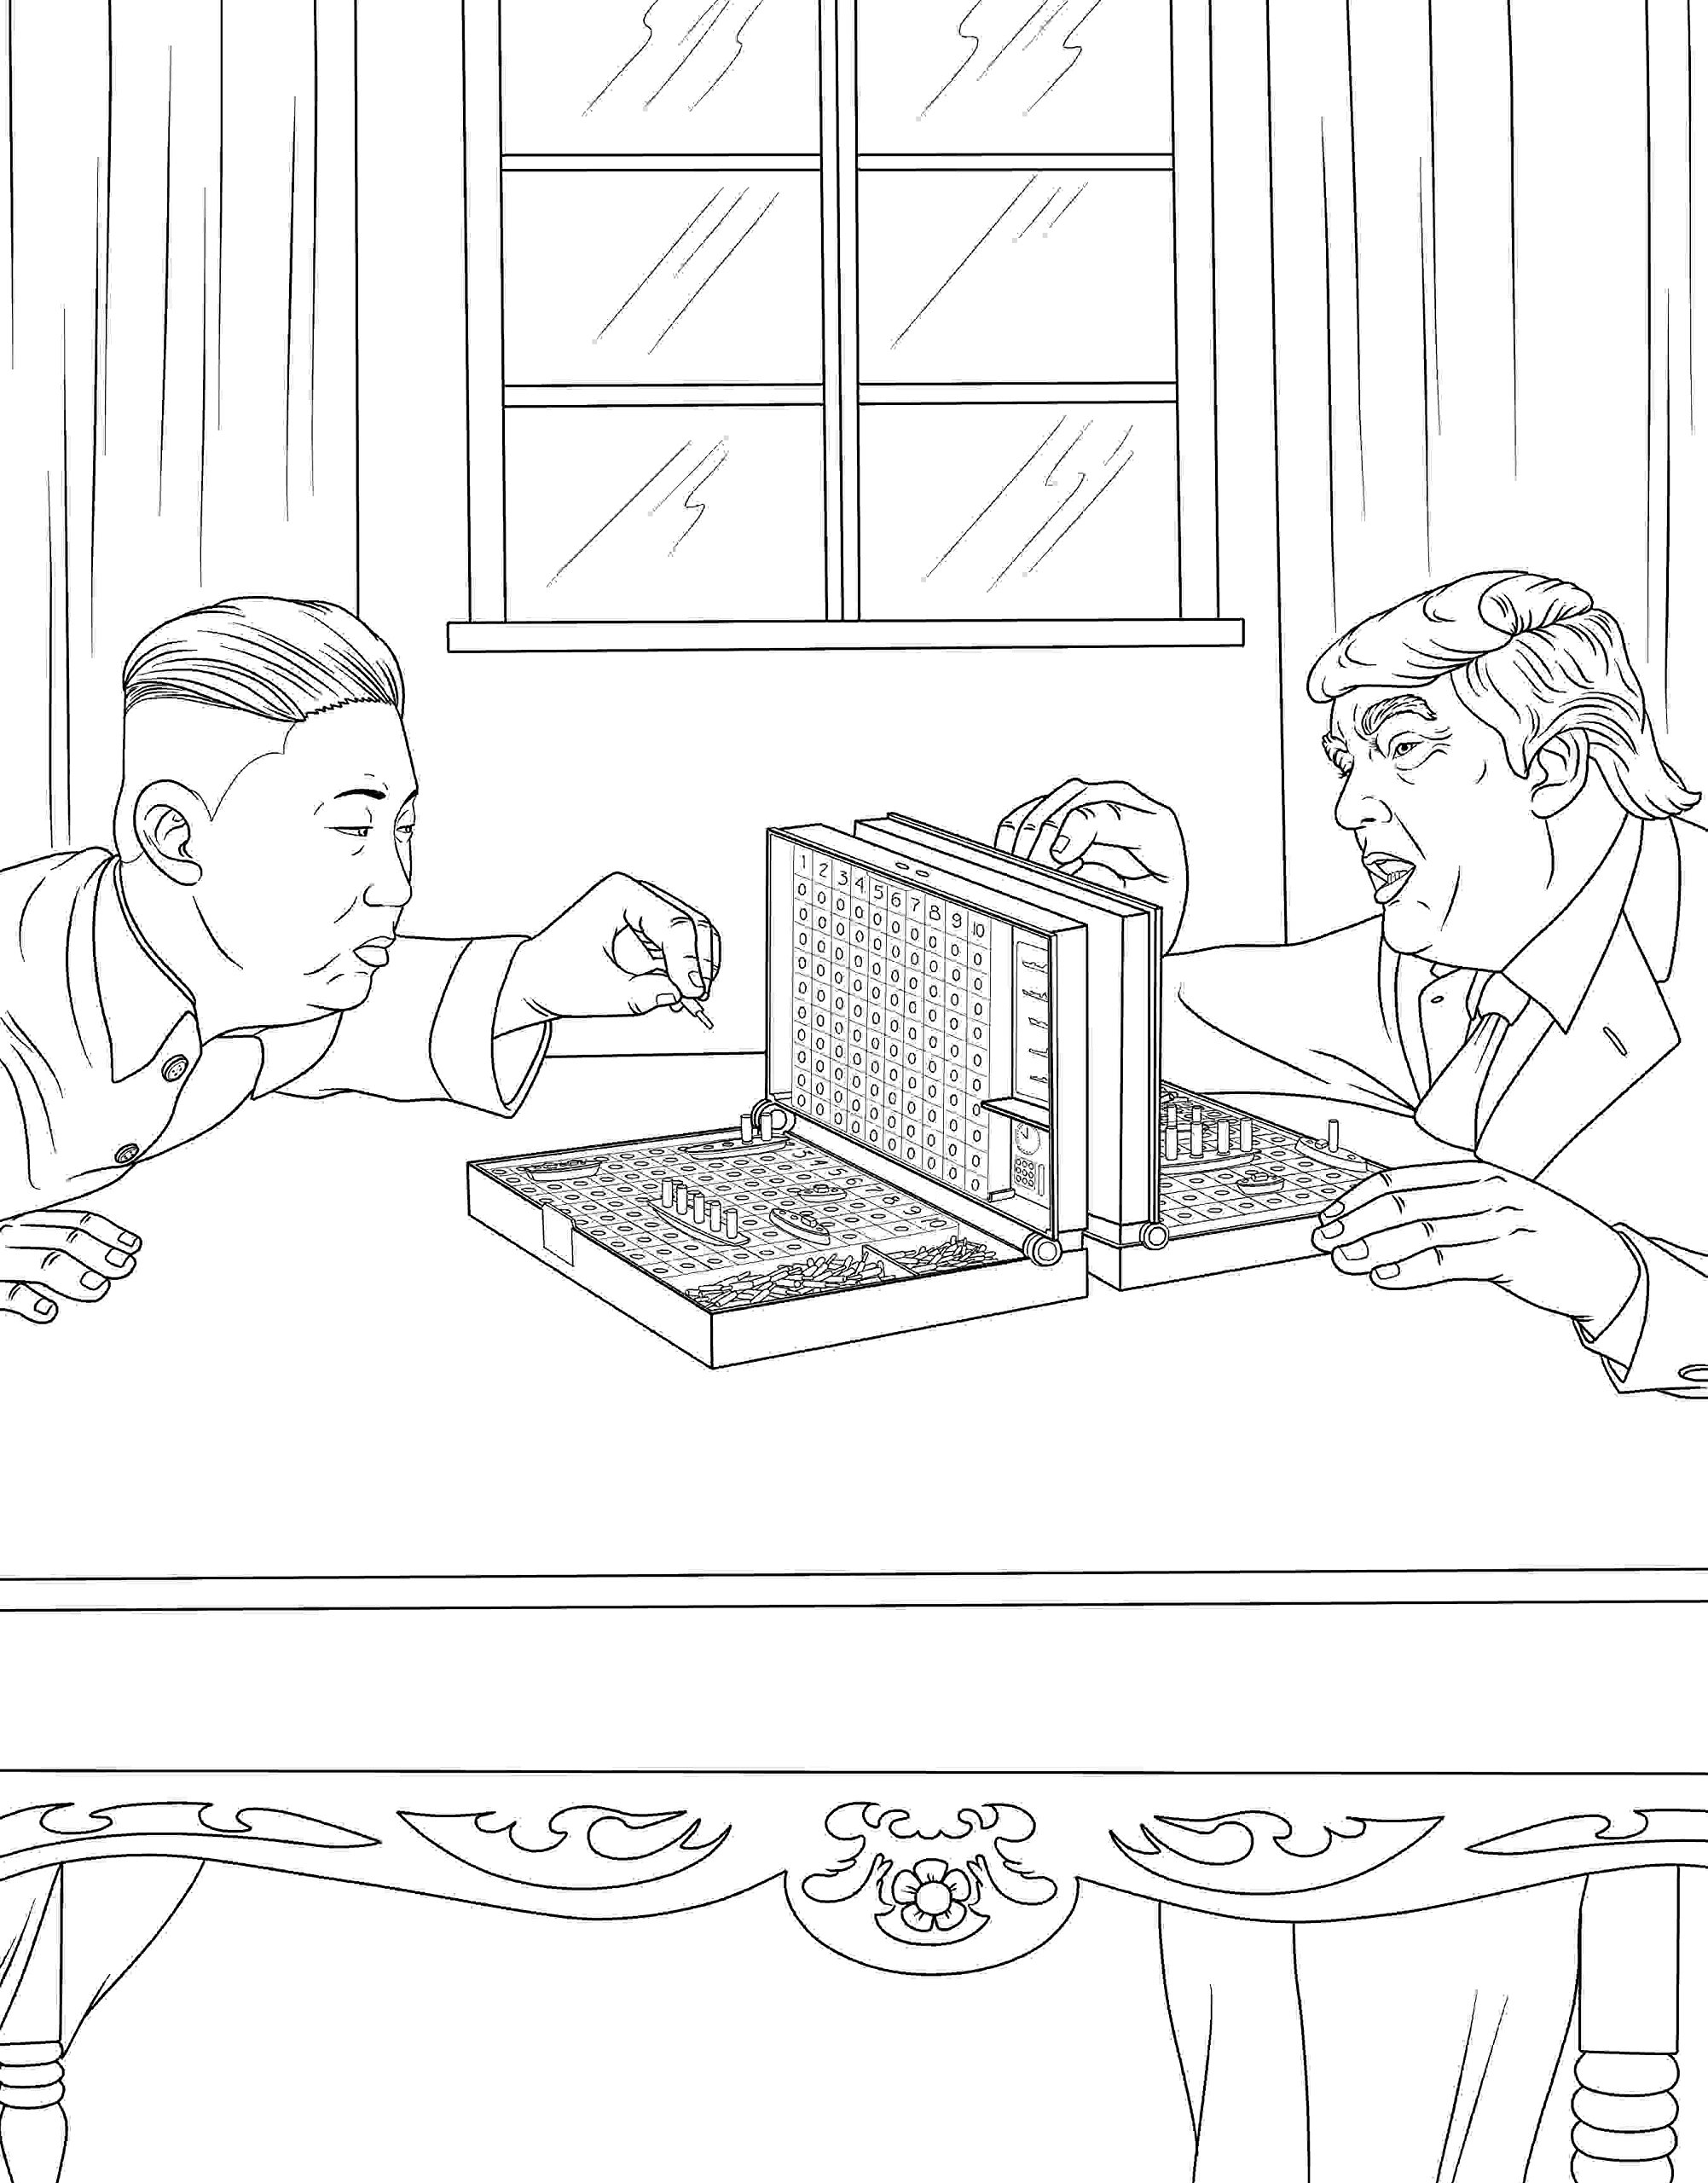 amazoncom the trump coloring book 9781682610282 m g anthony books - How To Make Coloring Pages